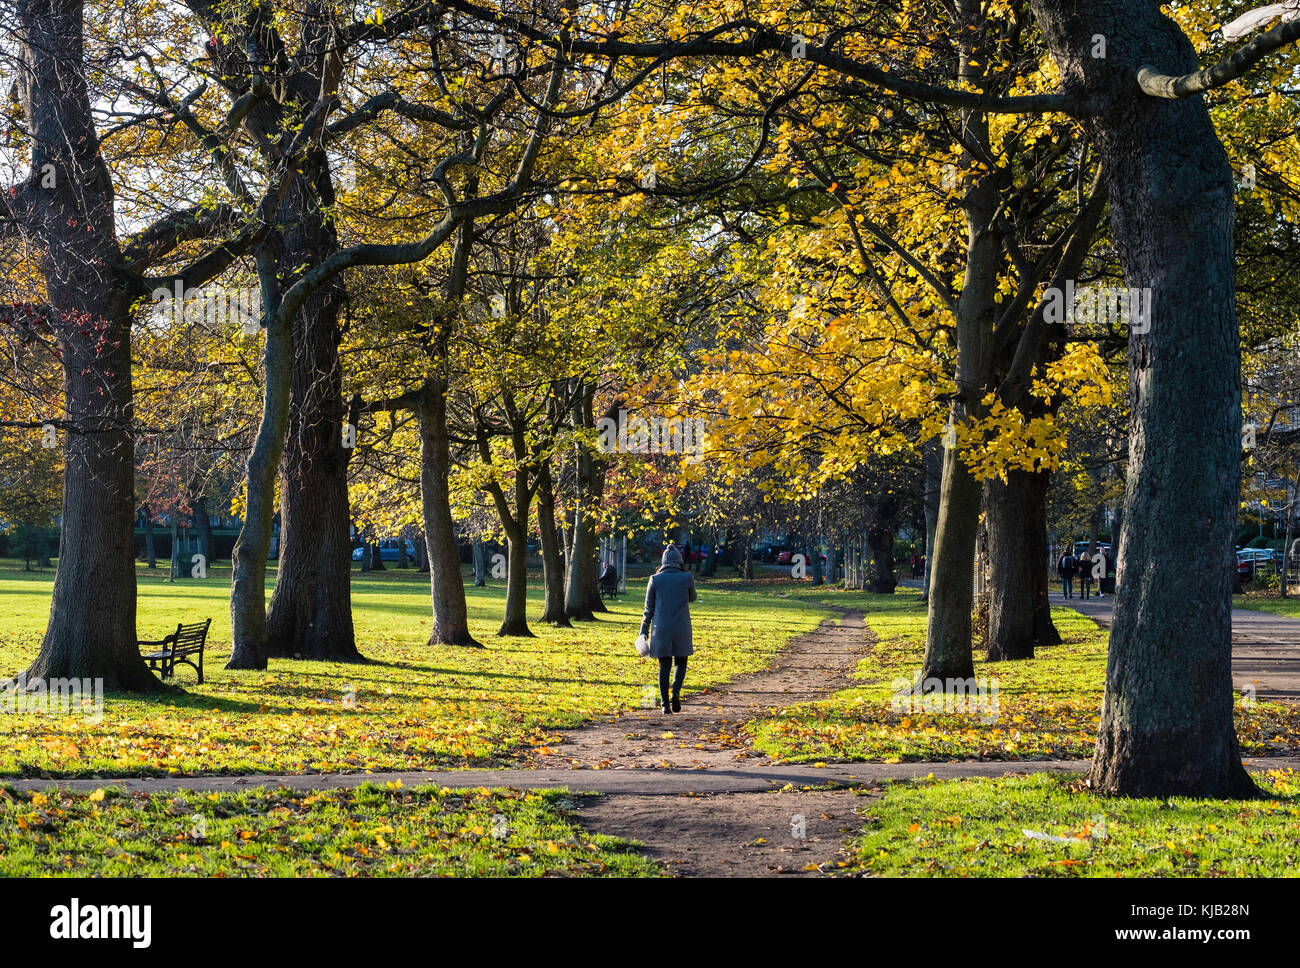 the Meadows park in Edinburgh, Scotland, United Kingdom - Stock Image